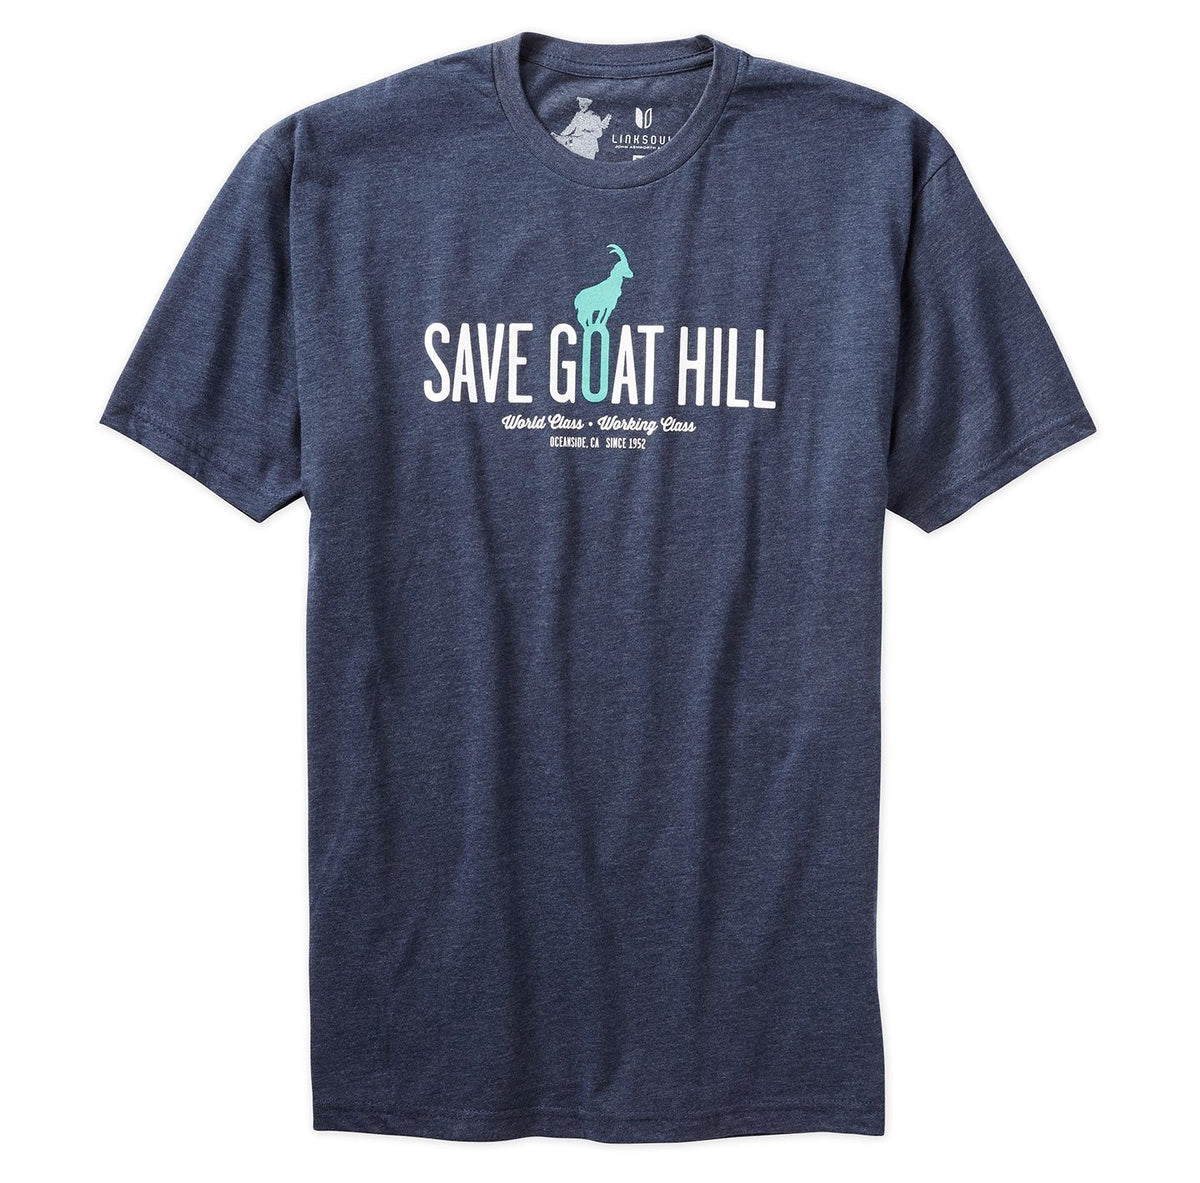 Save Goat Hill Tee (Mens)